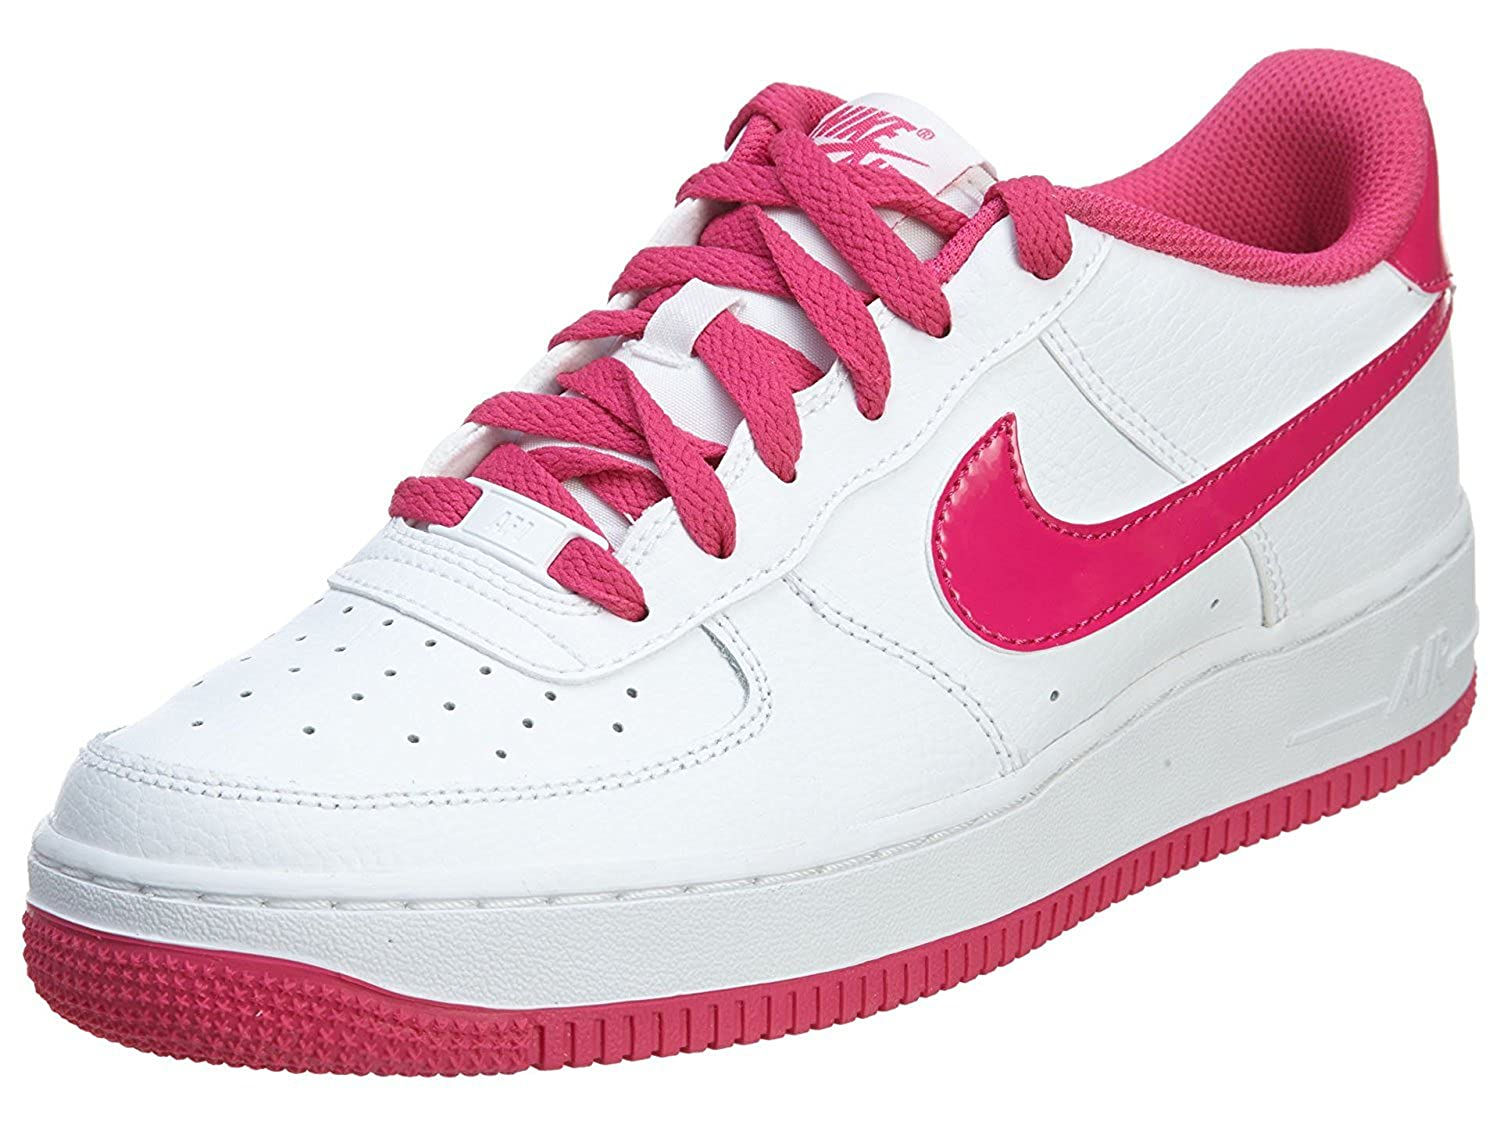 big sale 7c5c9 65e6e Amazon.com  Nike Girl s Air Force 1 Basktetball Shoes (GS) White Hot Pink  5.5Y  Shoes